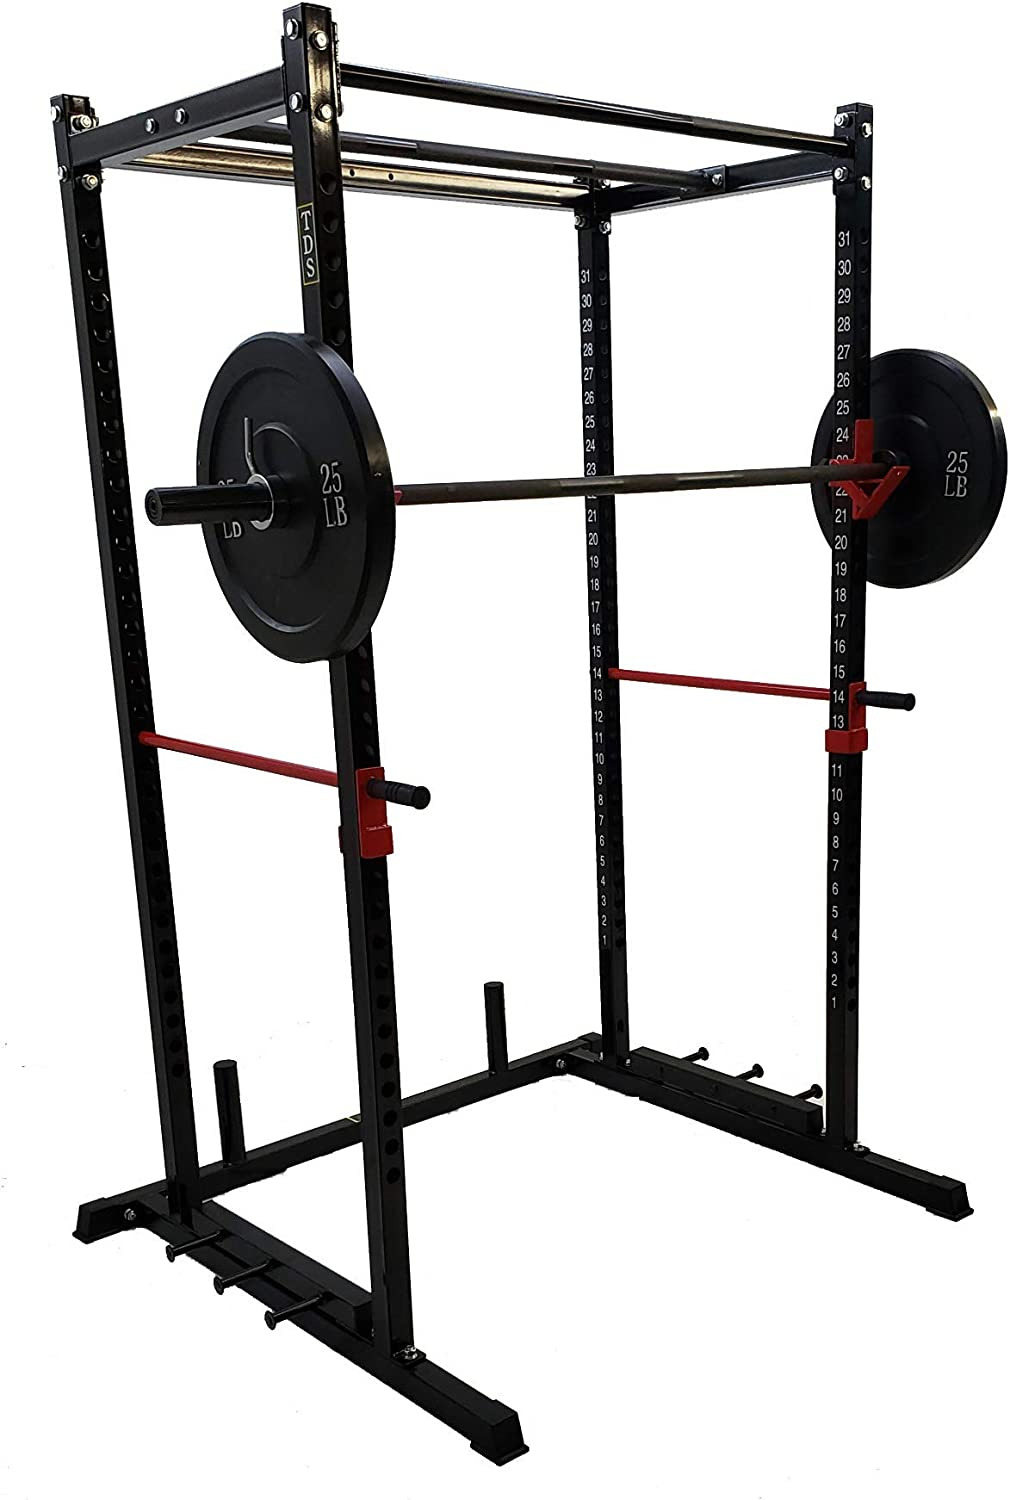 """Amazon.com: TDS Power Rack PKG-1000 lb Rated Black Power Rack, 1.25"""" Dia  Professionally knurled (2) Chinning Bars & Band Holder Attachment.  Provision to add LAT Attachment, Pull up/Chip up bar and More!:"""